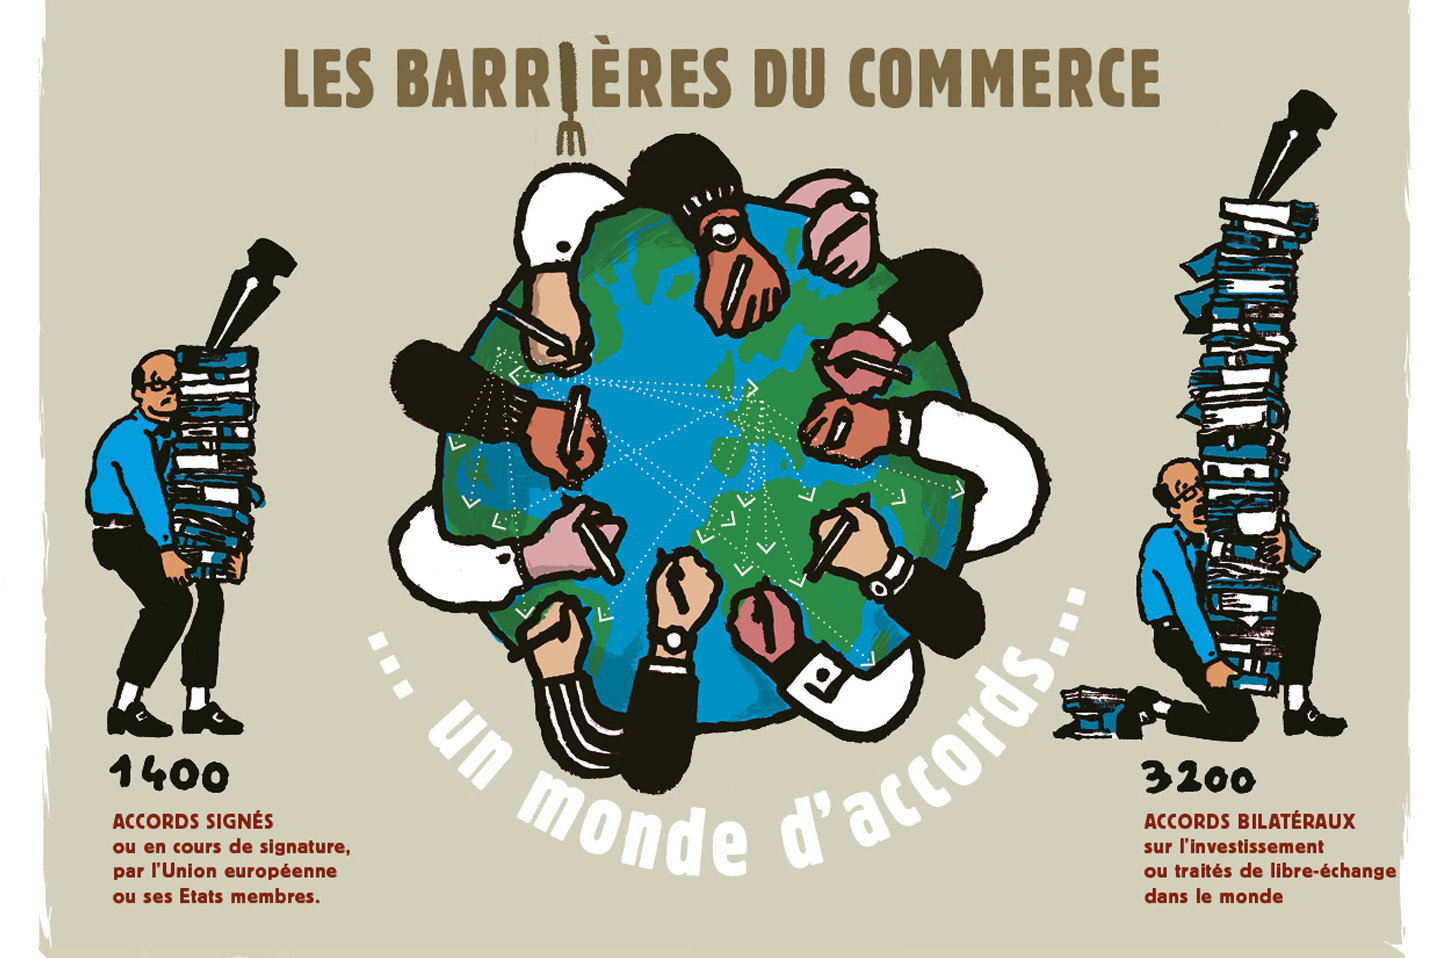 barrierescommerce